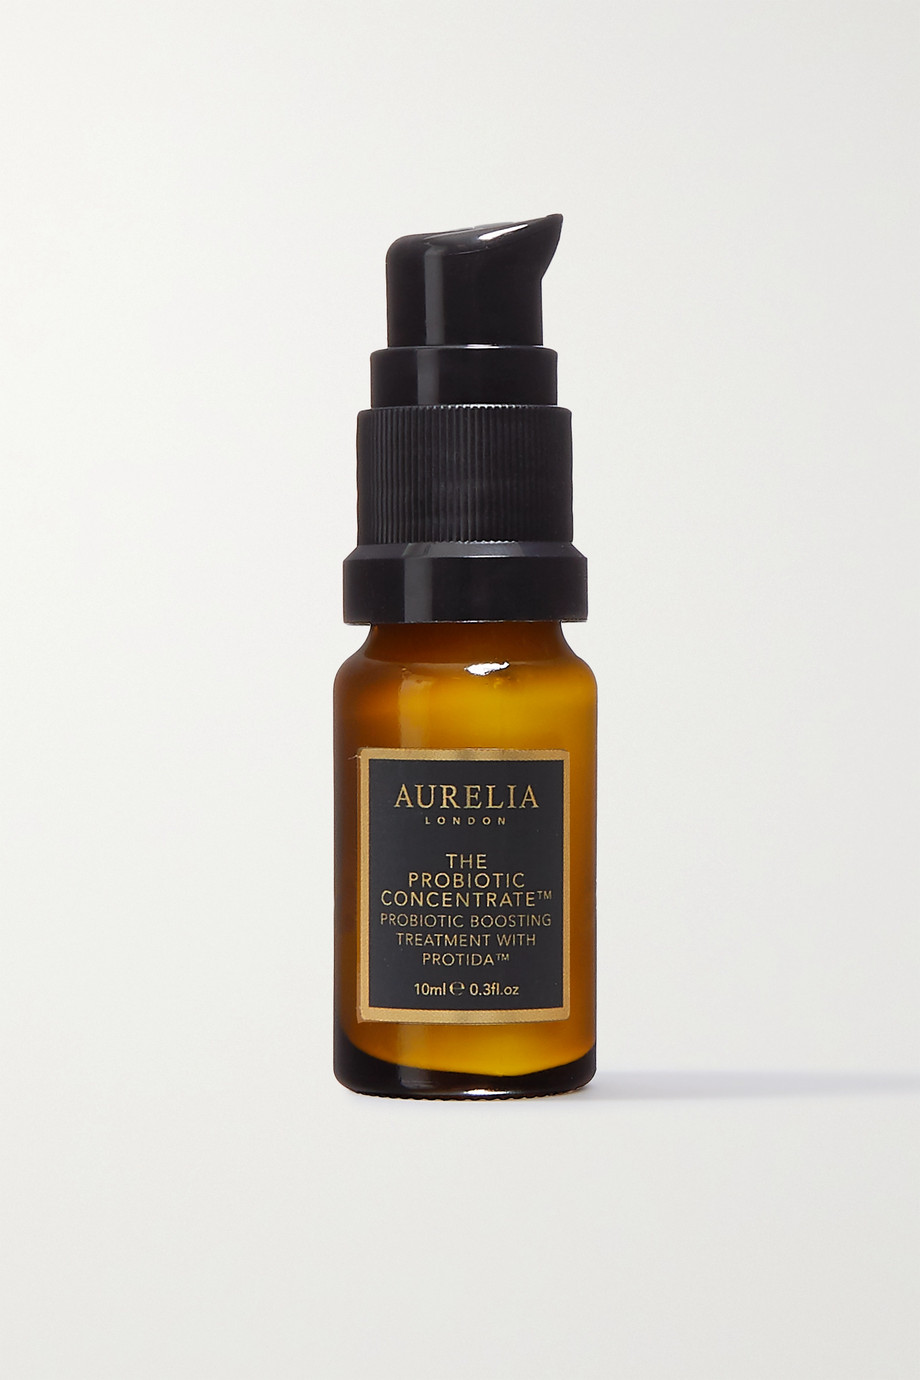 Aurelia Probiotic Skincare + NET SUSTAIN The Probiotic Concentrate, 10ml